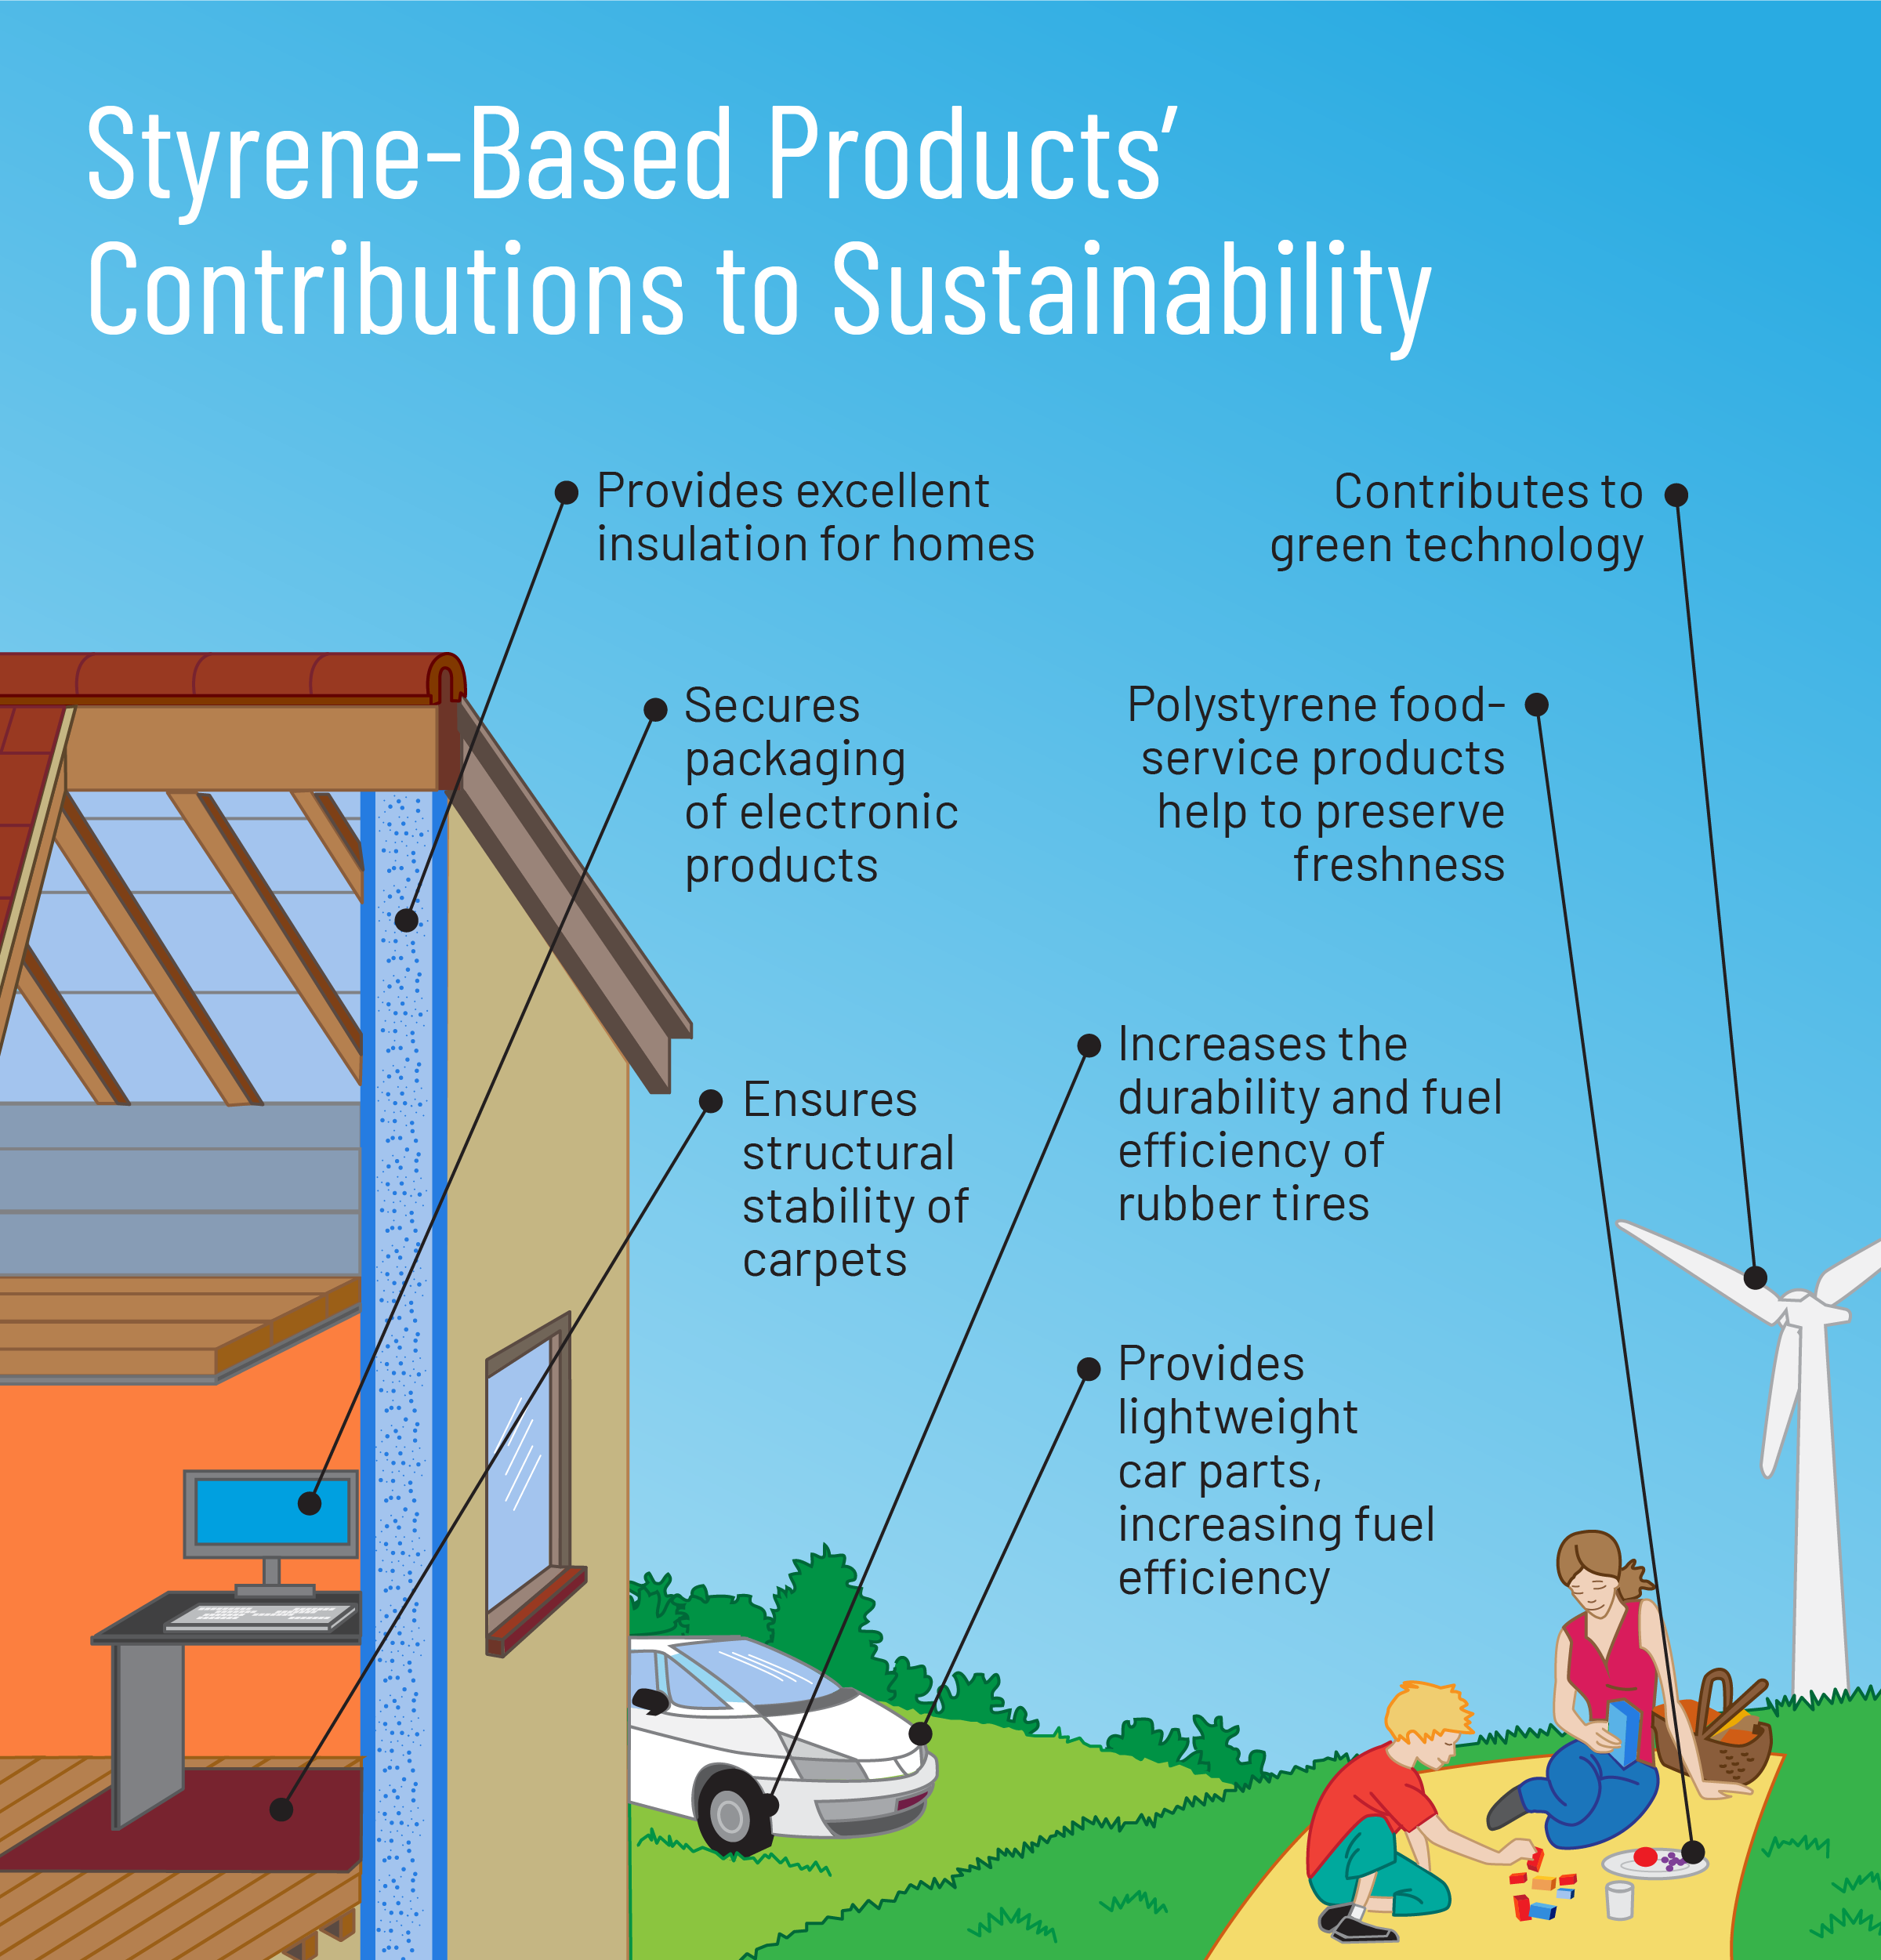 styrene-based products' contributions to sustainability